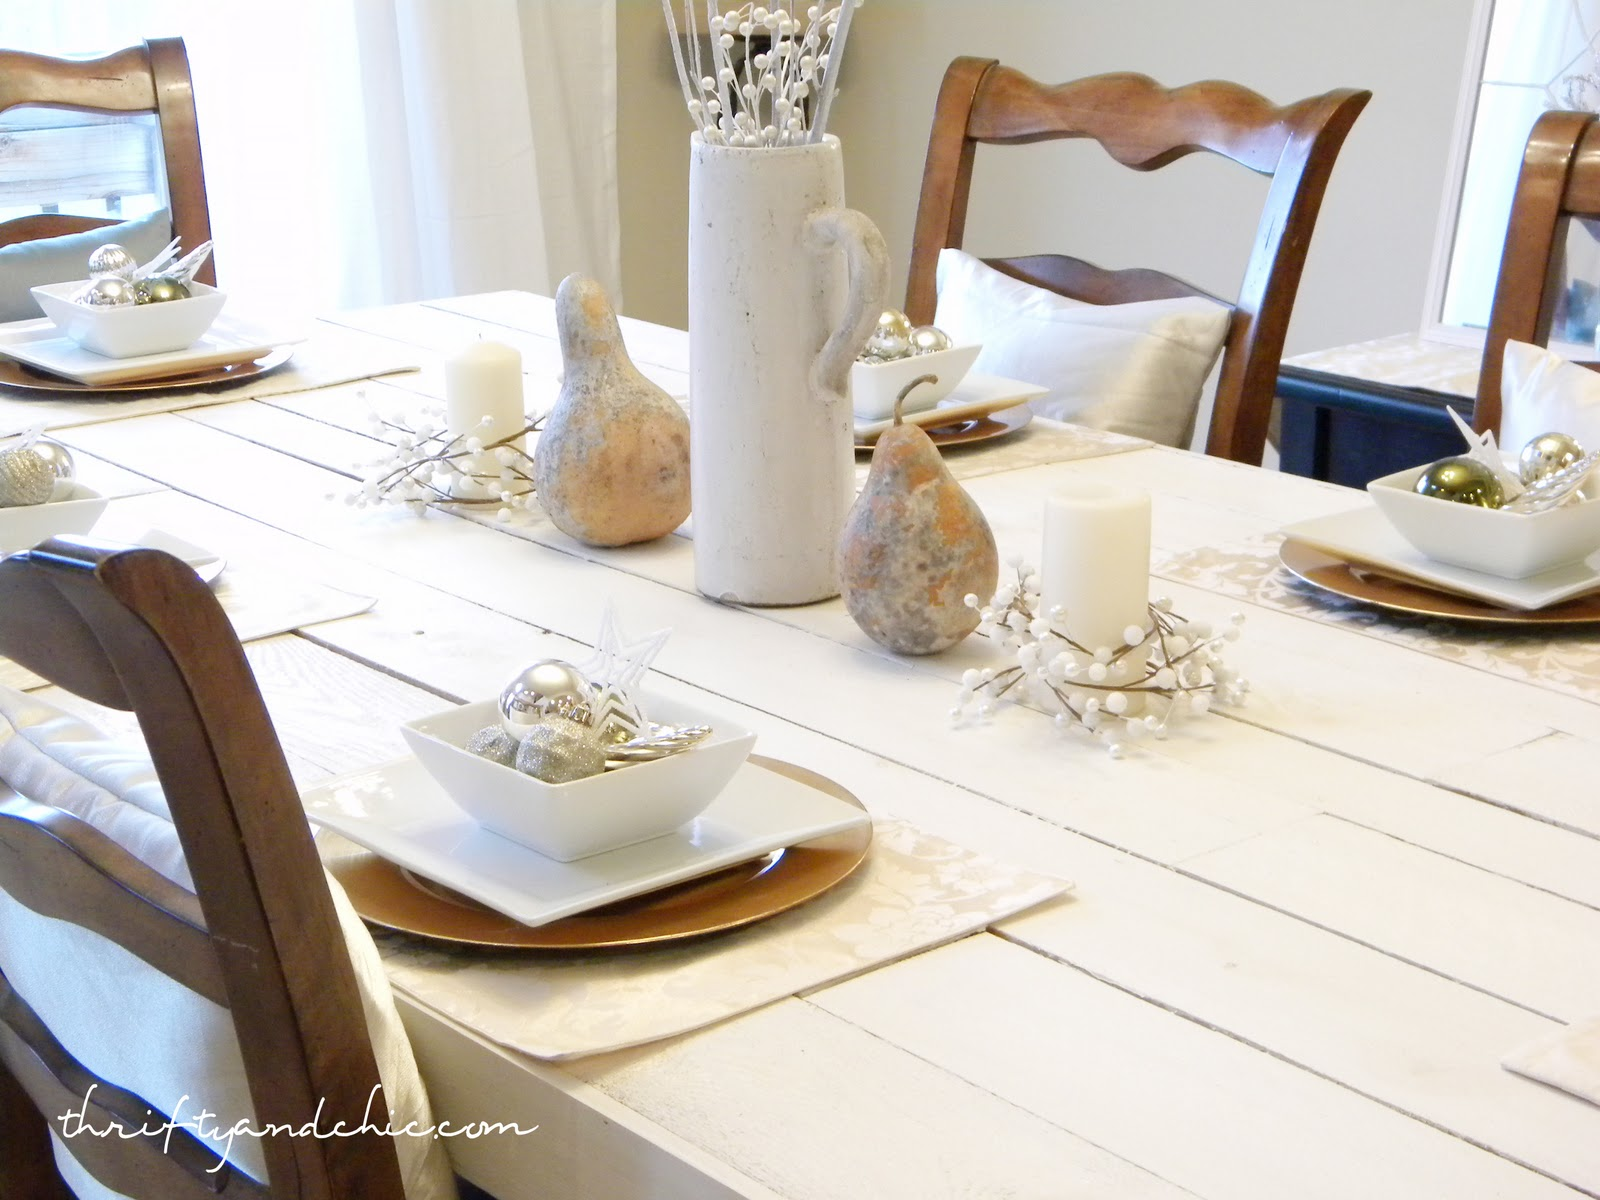 thrifty and chic diy projects and home decor it s like a warm winter wonderland unless the hubs has a hand in it i m using a lot of white and touches of pearl silver and shiny sparkly things